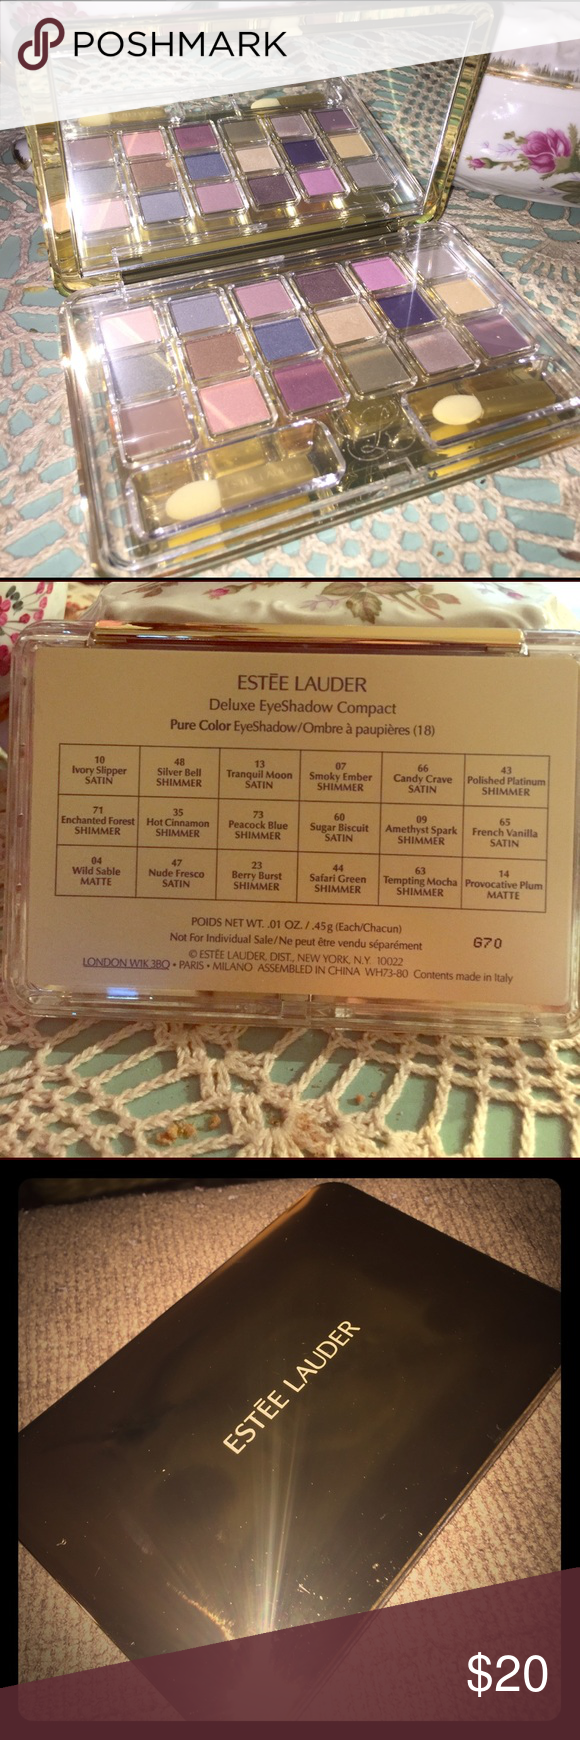 Estee Lauder deluxe eye shadow compact Gold Estée Lauder eye shadow compact with 18 colors to choose from. Never used. There is no box. Came as a set with other items. Estee Lauder Makeup Eyeshadow